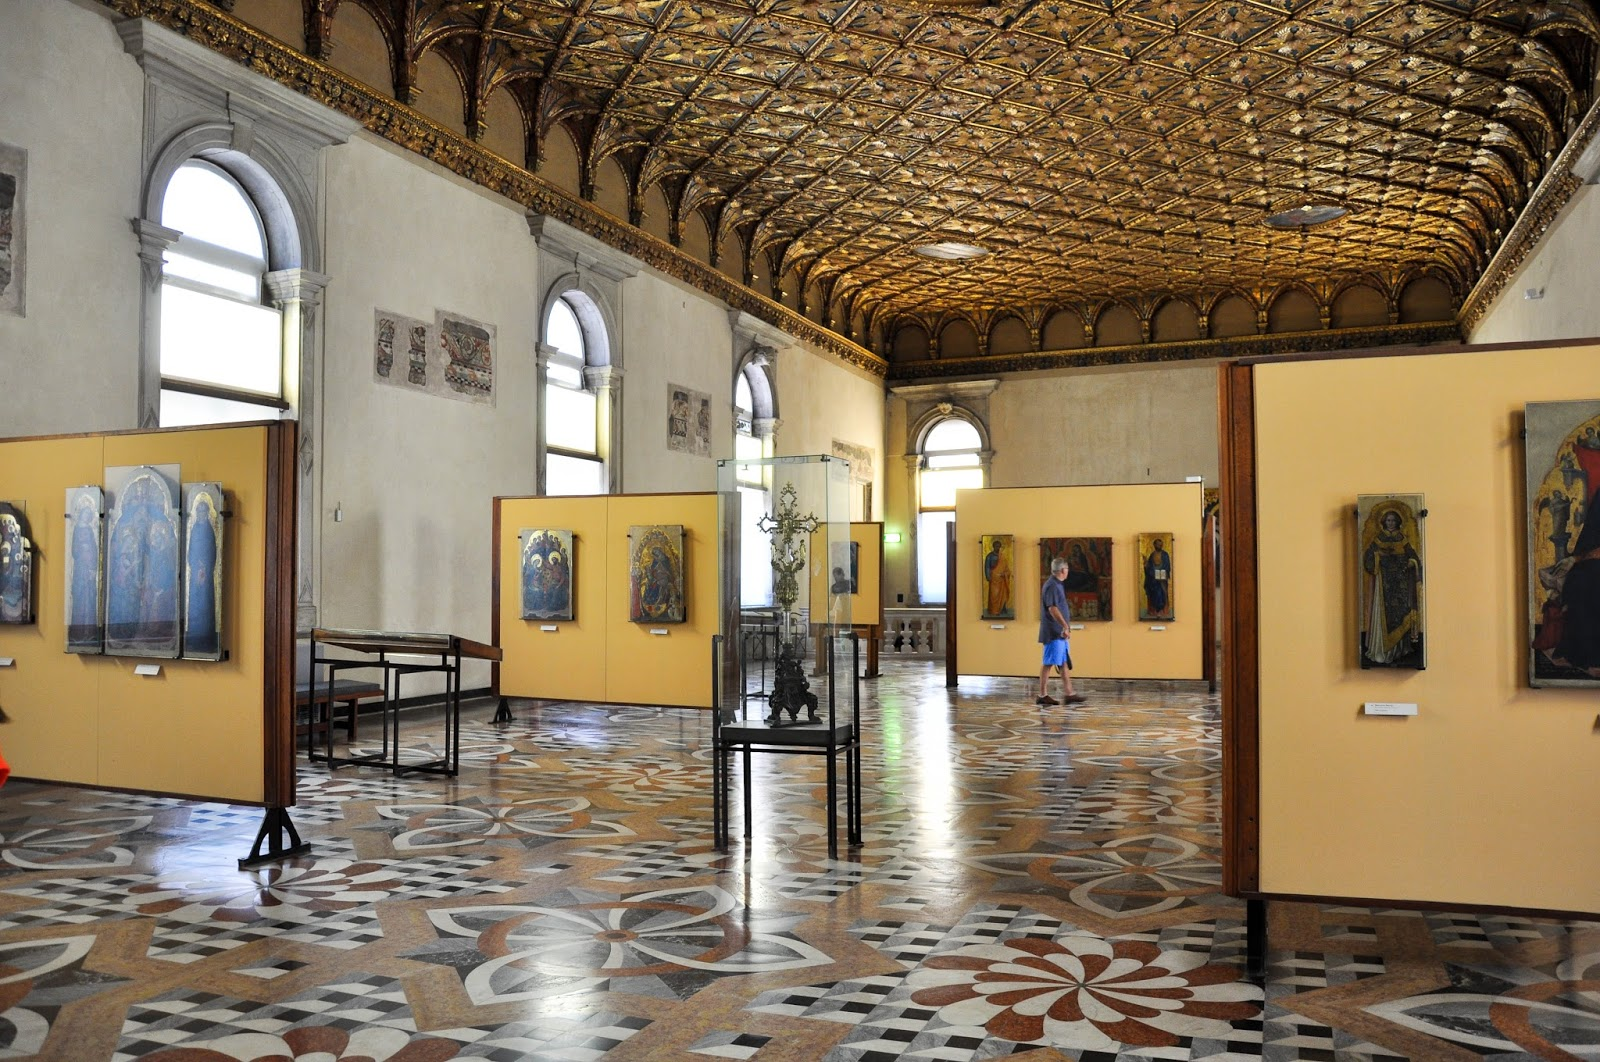 The first room, Gallerie dell'Accademia in Venice